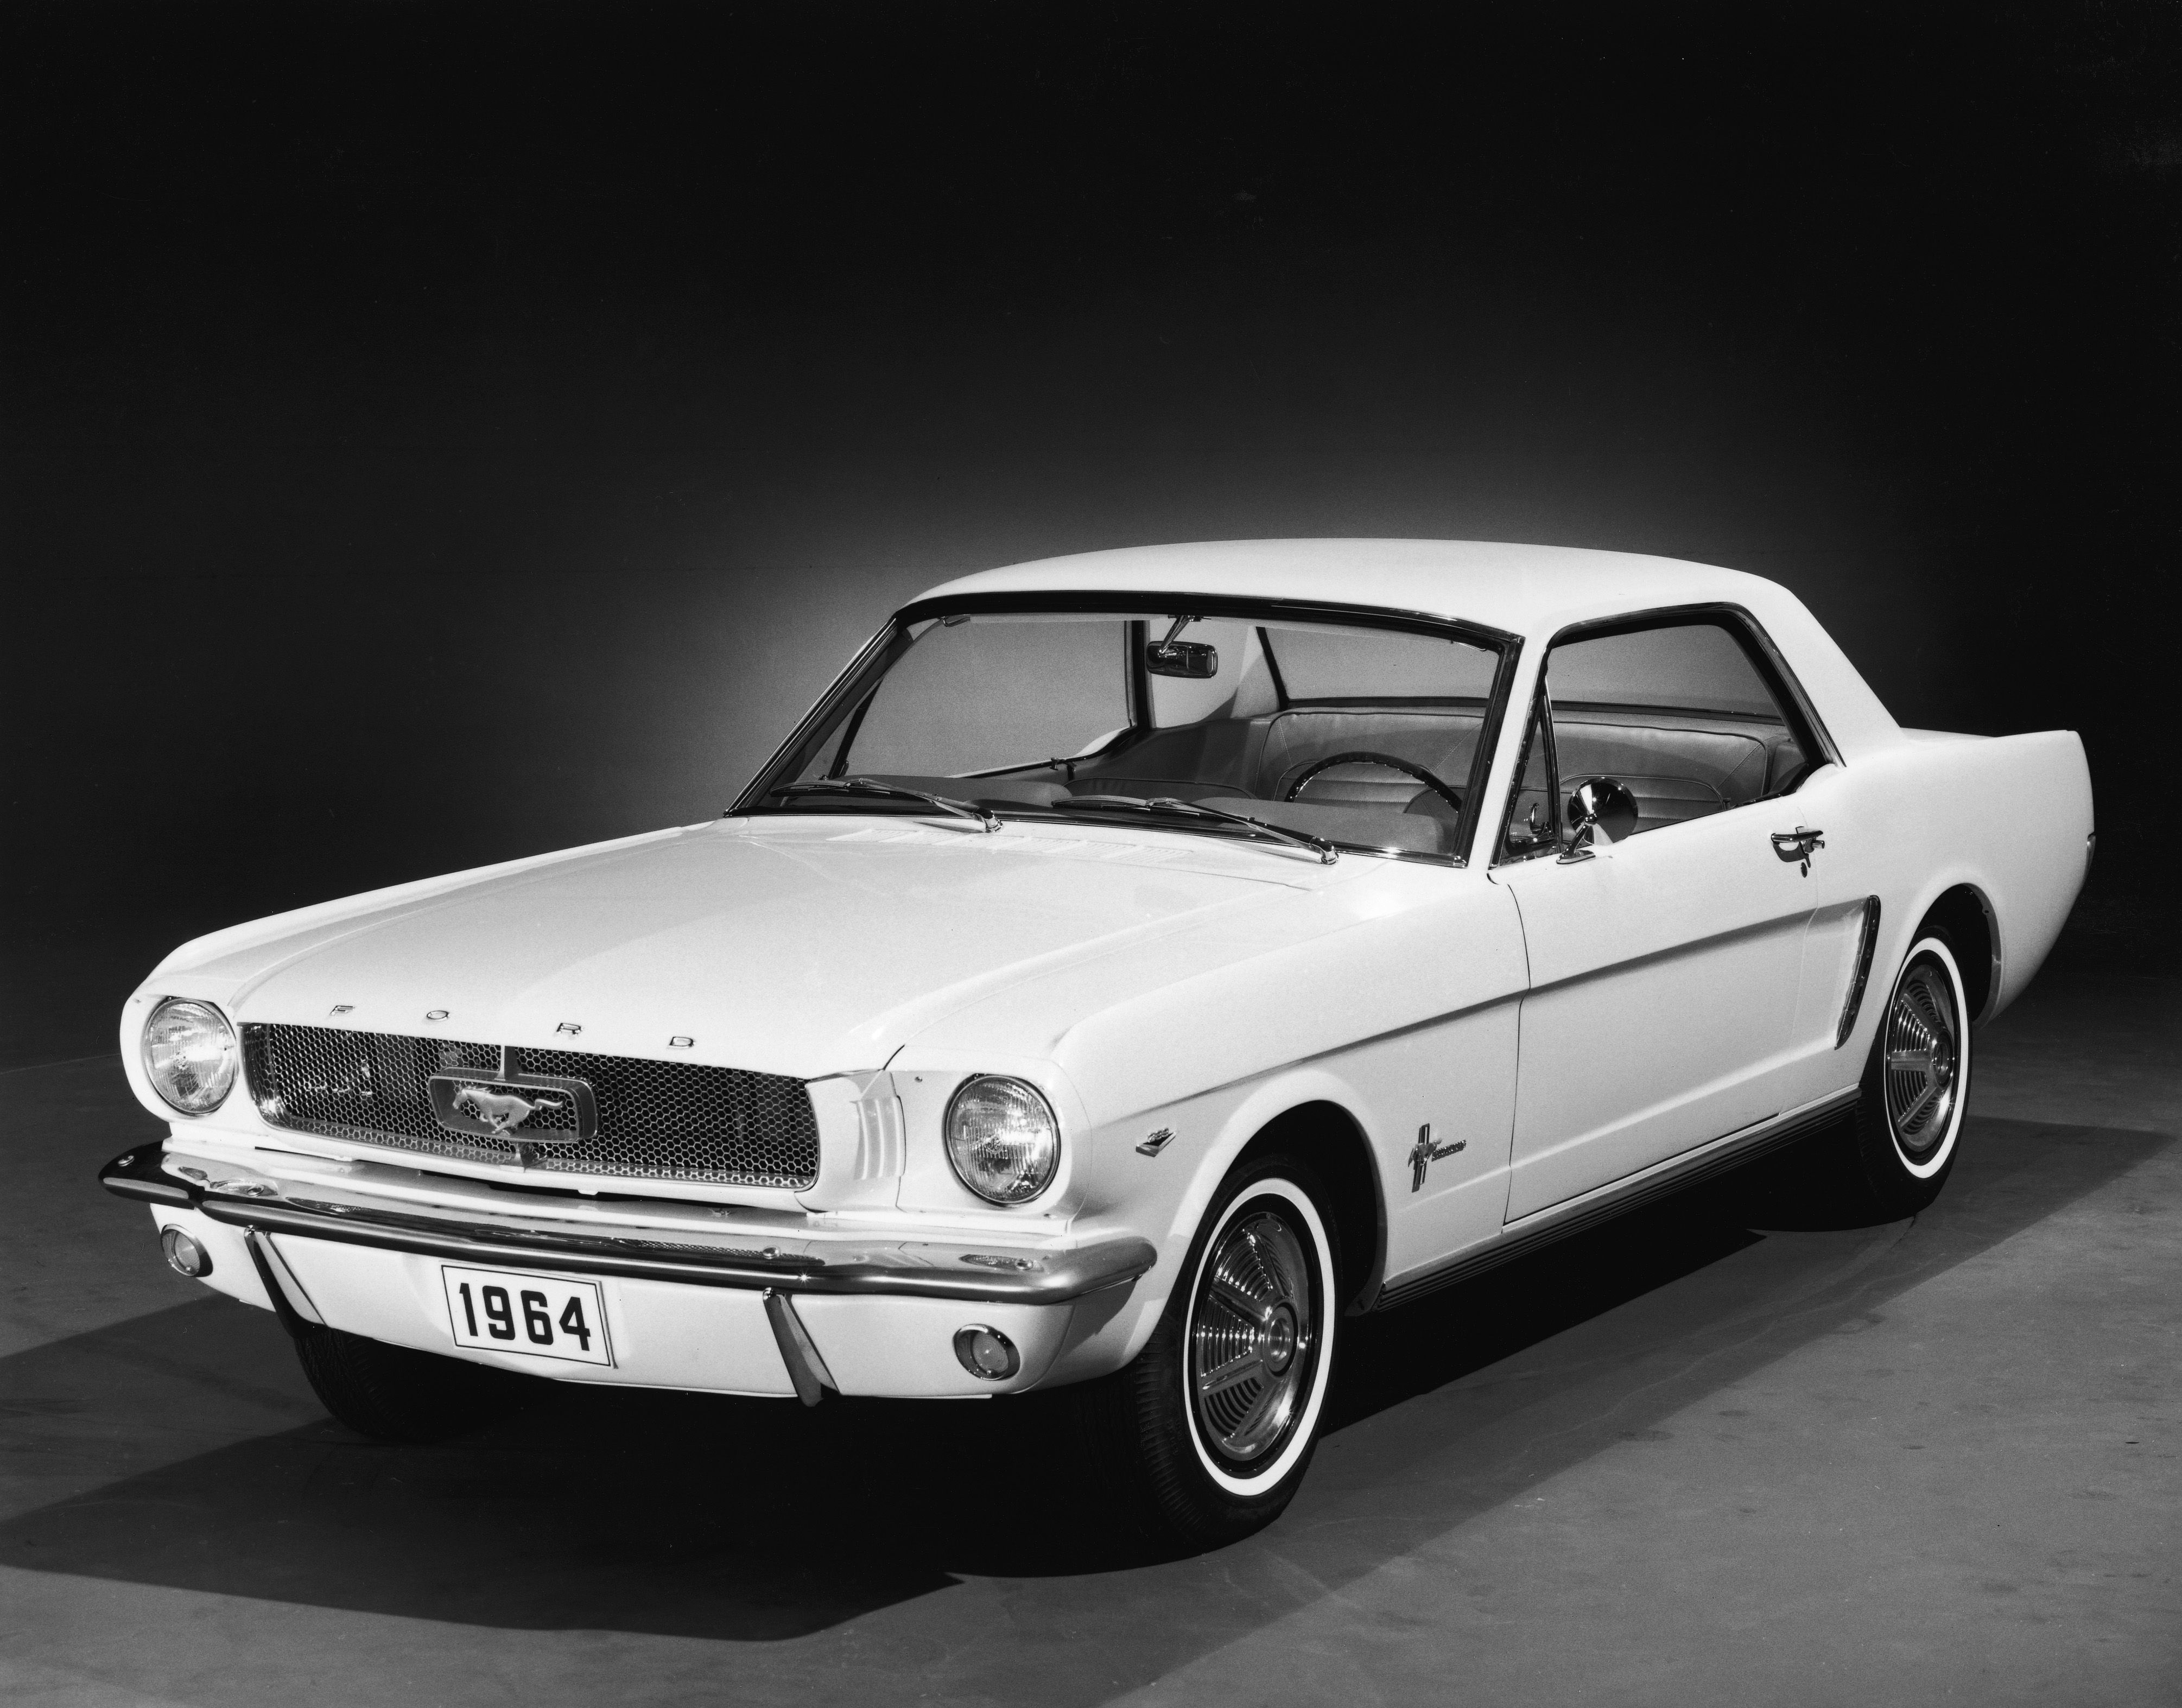 My First Car And The Year I Was Born Loved It If You Were In 1964 Ford Motor Company Launched Generation Of Mustang That